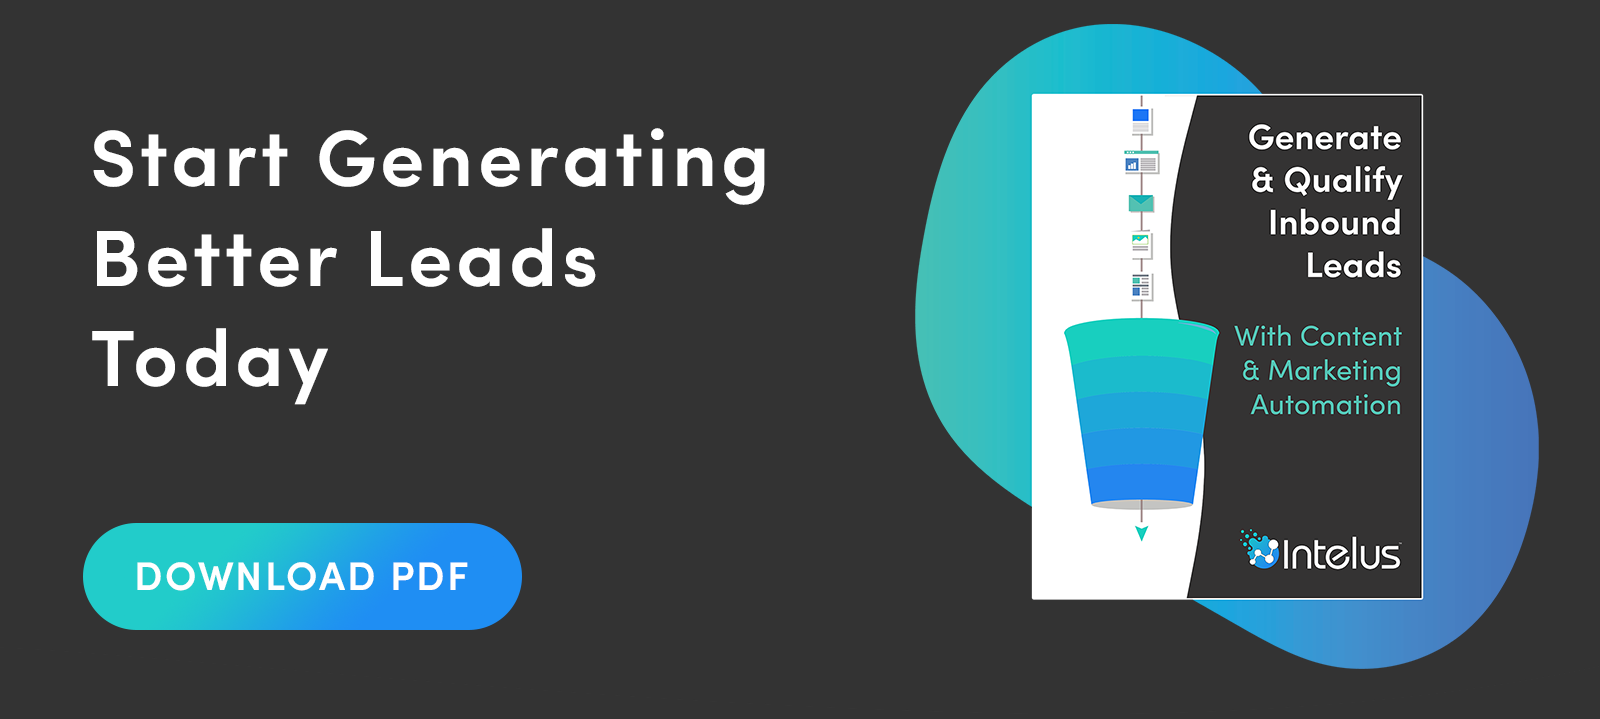 generate leads with content and marketing automation